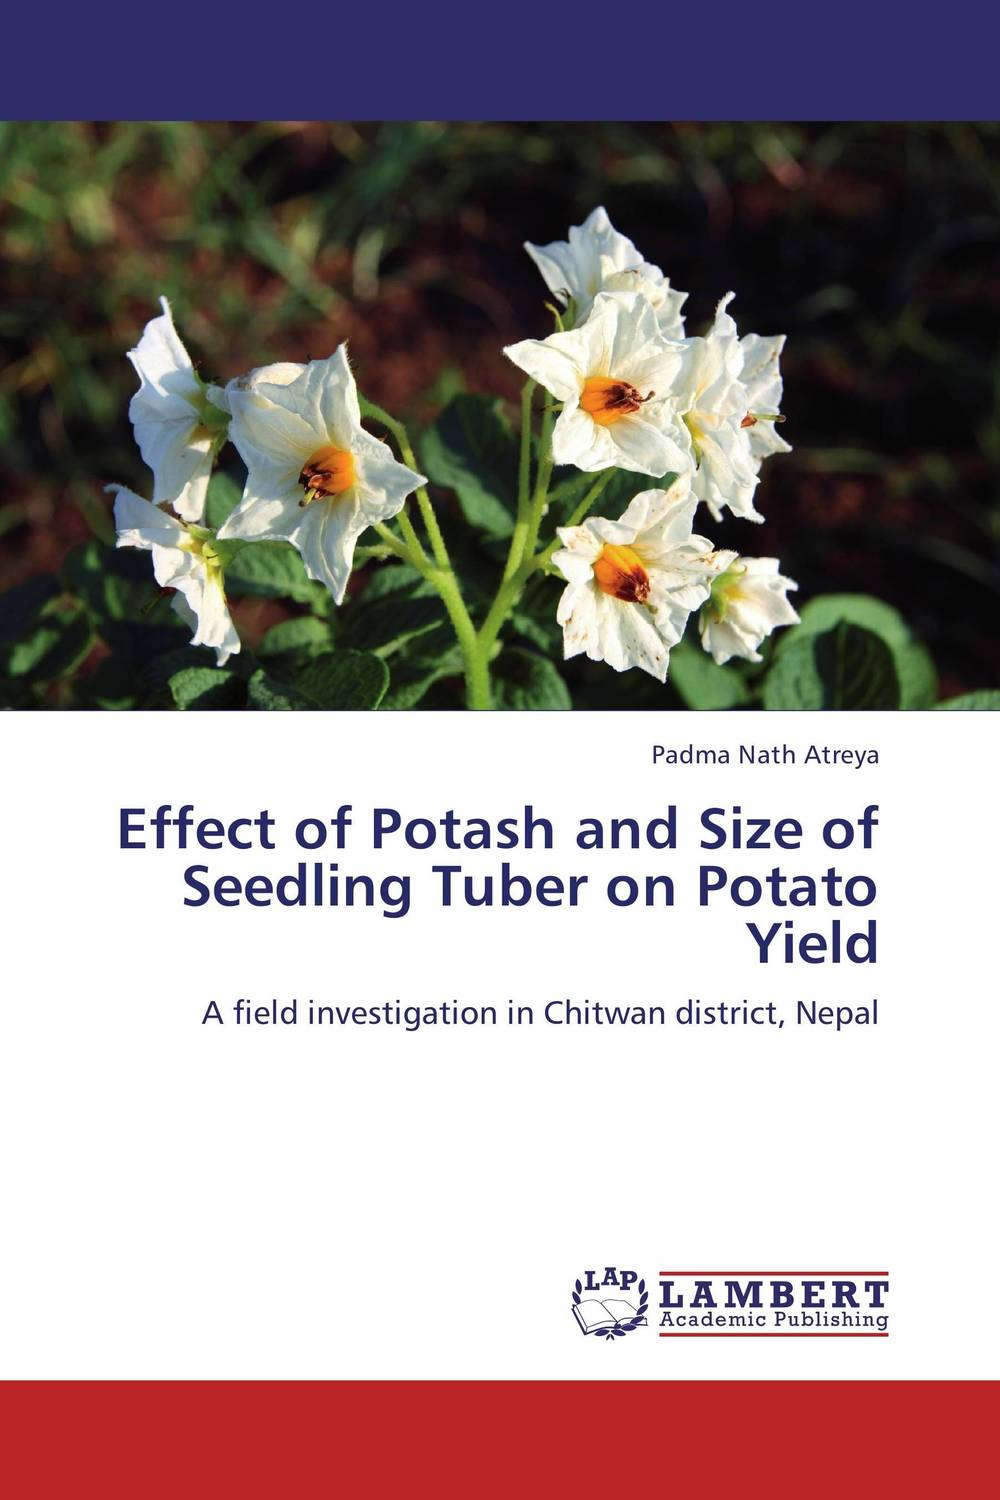 Effect of Potash and Size of Seedling Tuber on Potato Yield manuscript found in accra